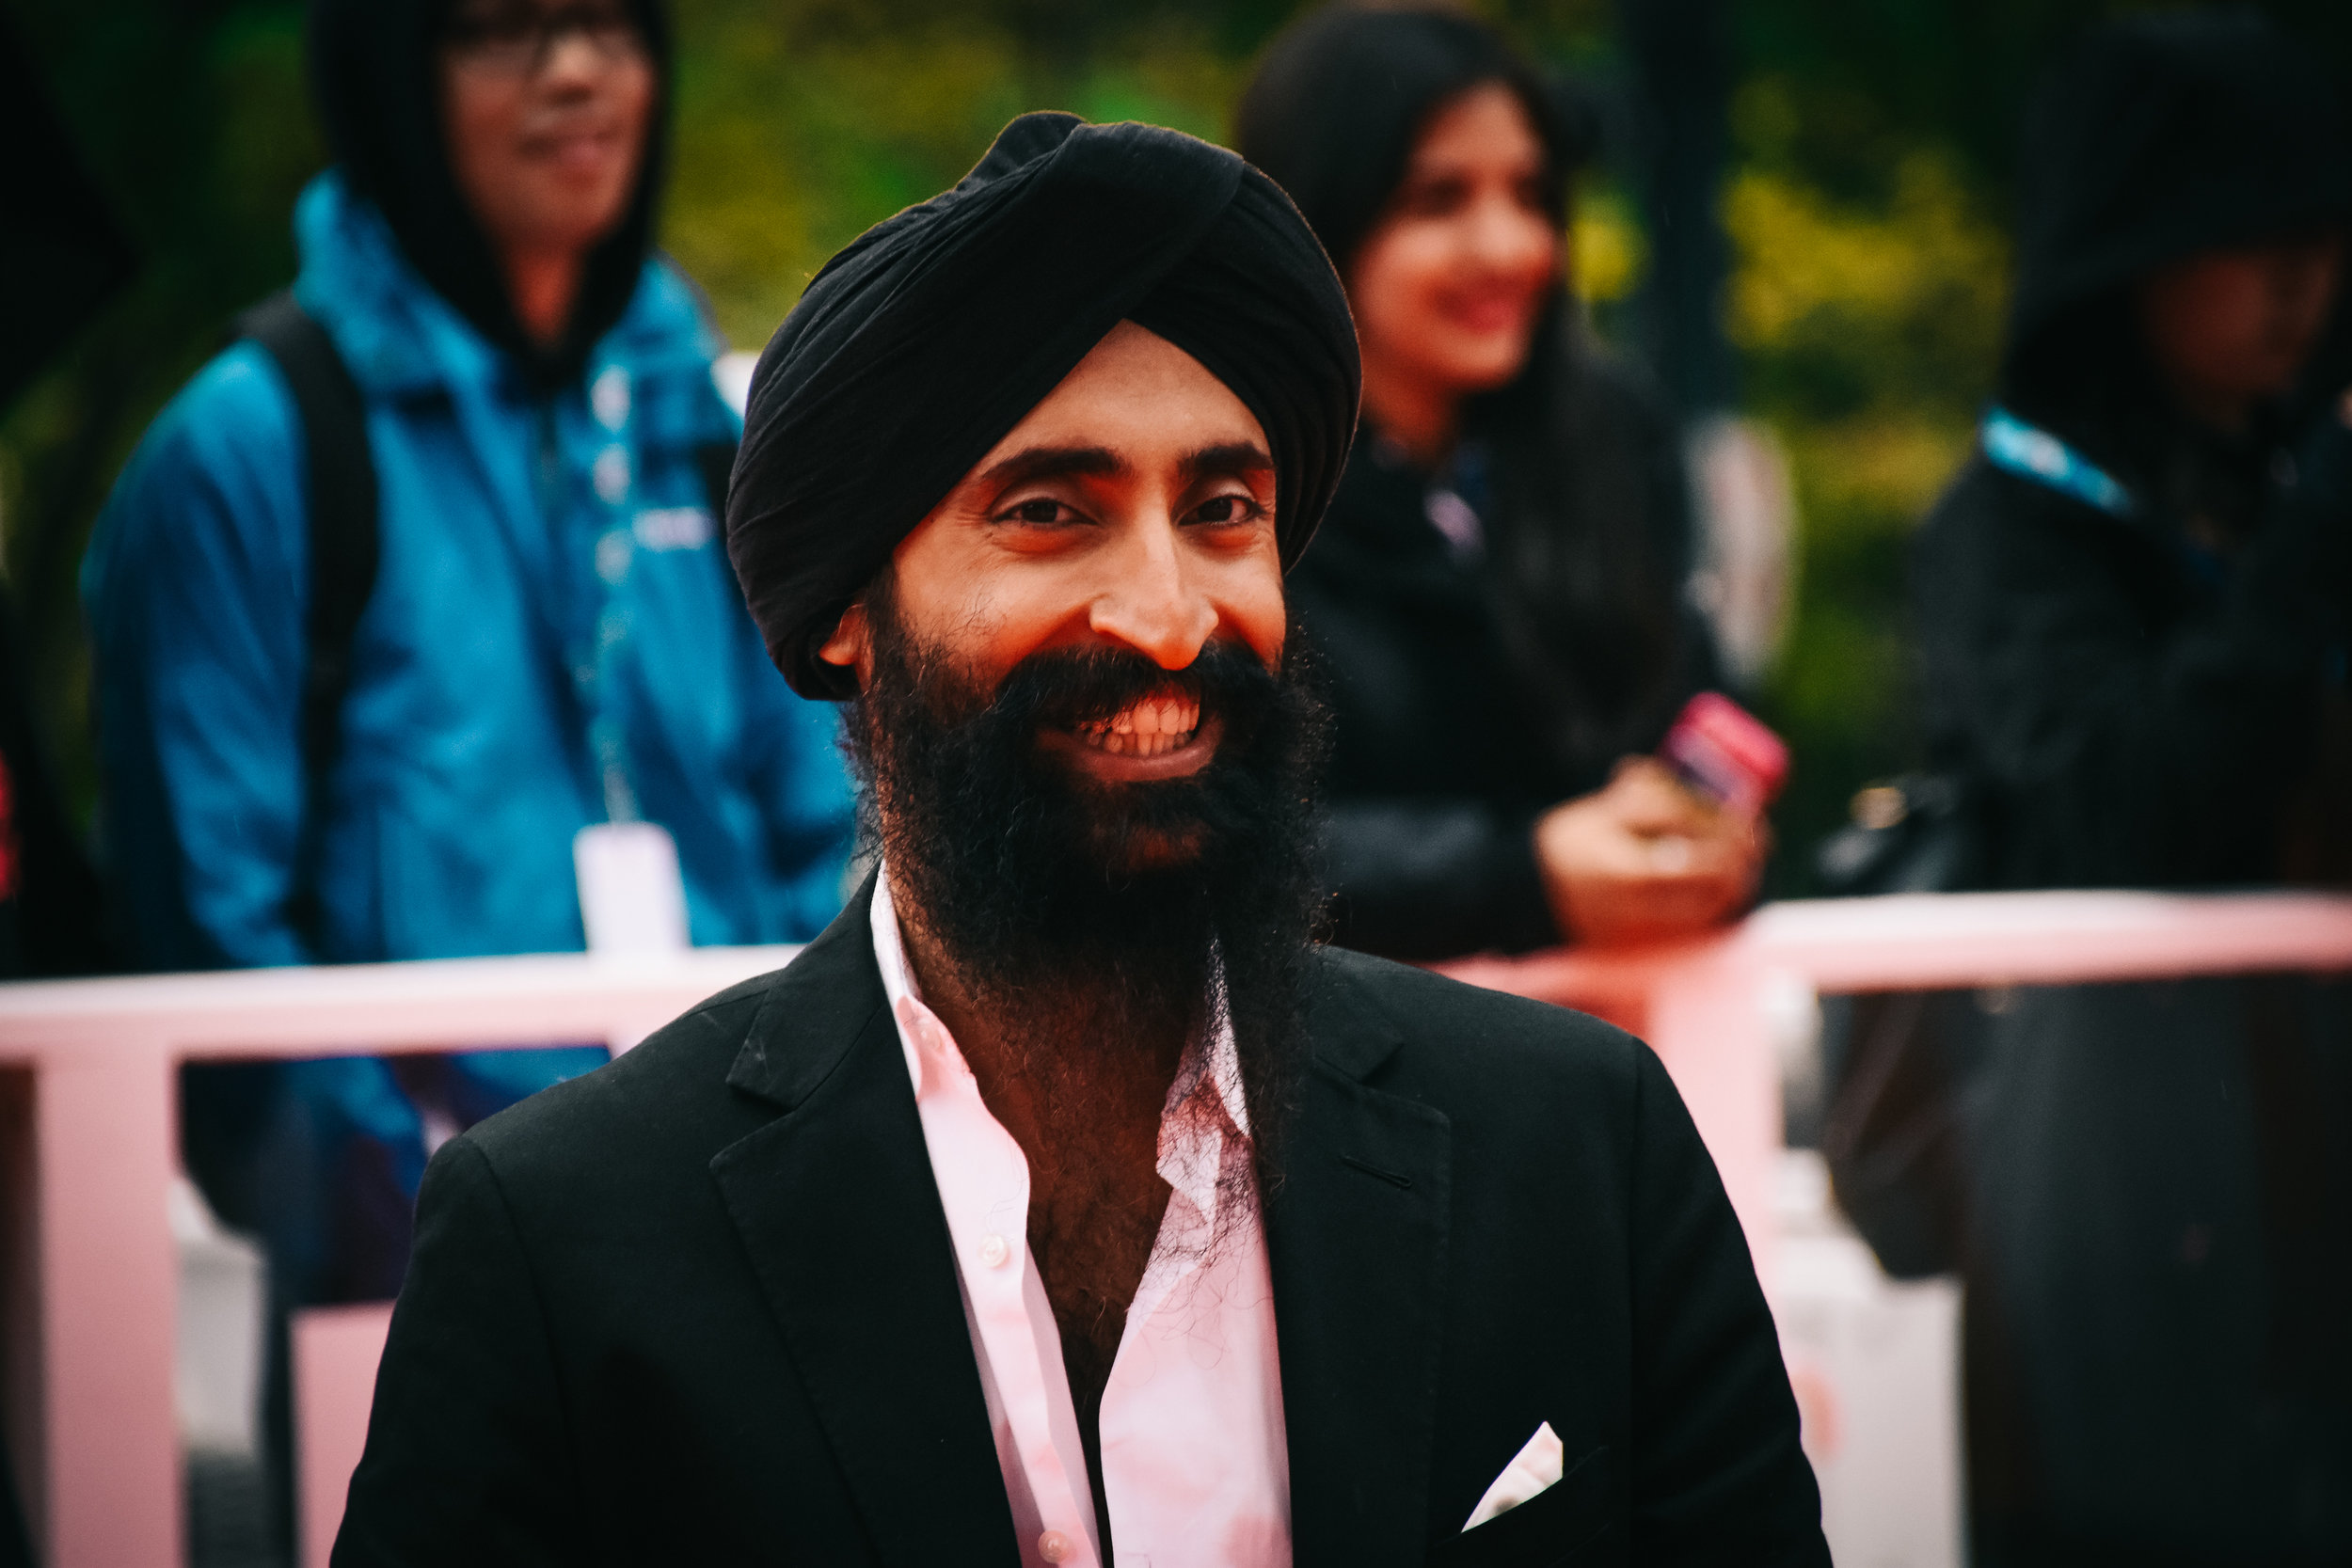 Waris Ahluwalia smiles for the cameras.